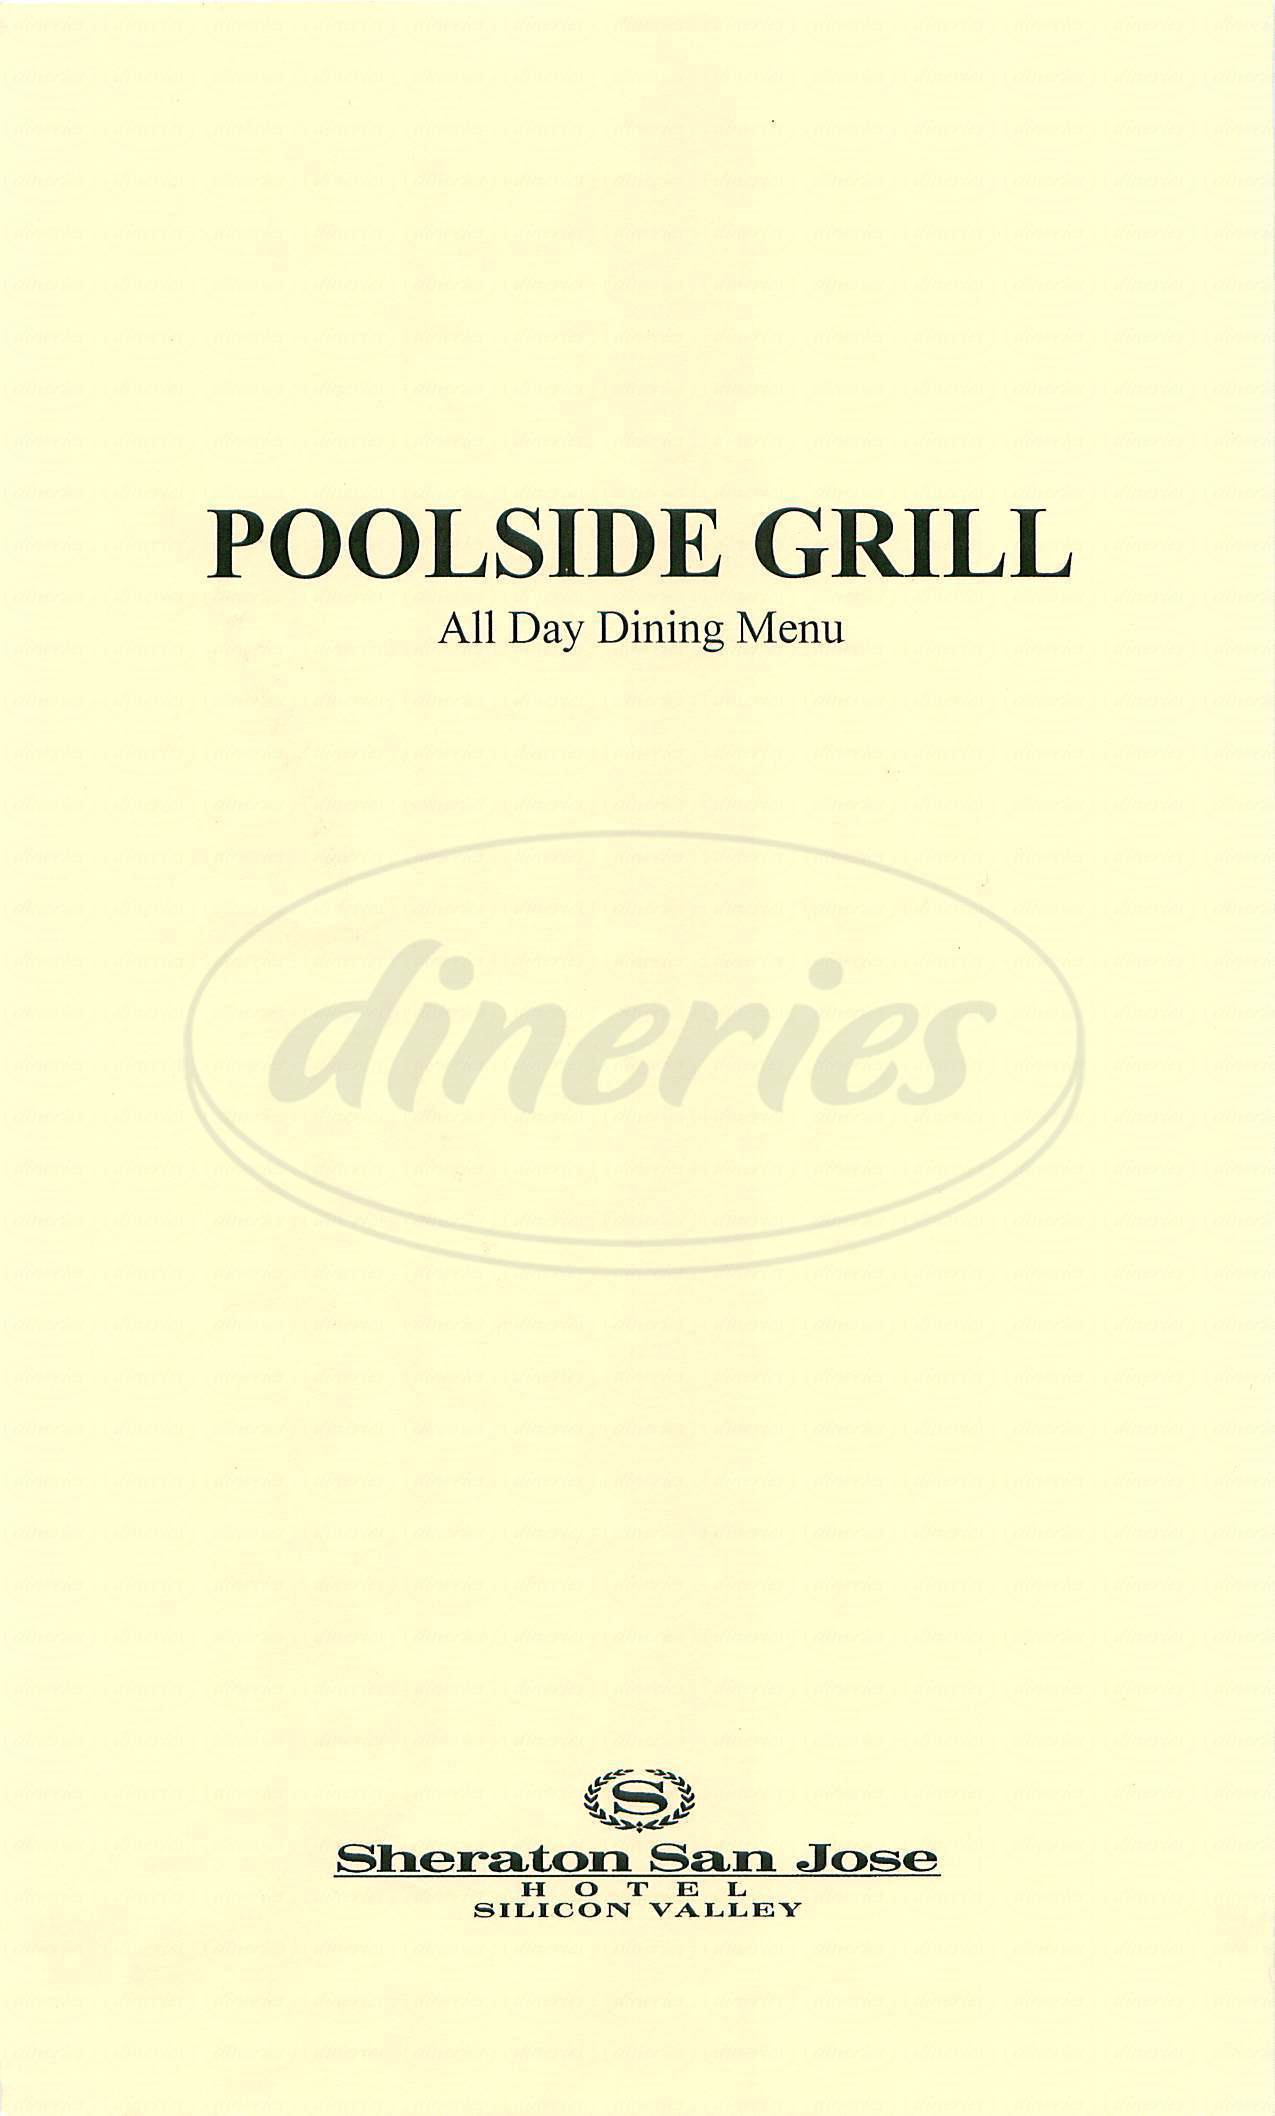 menu for Poolside Grill